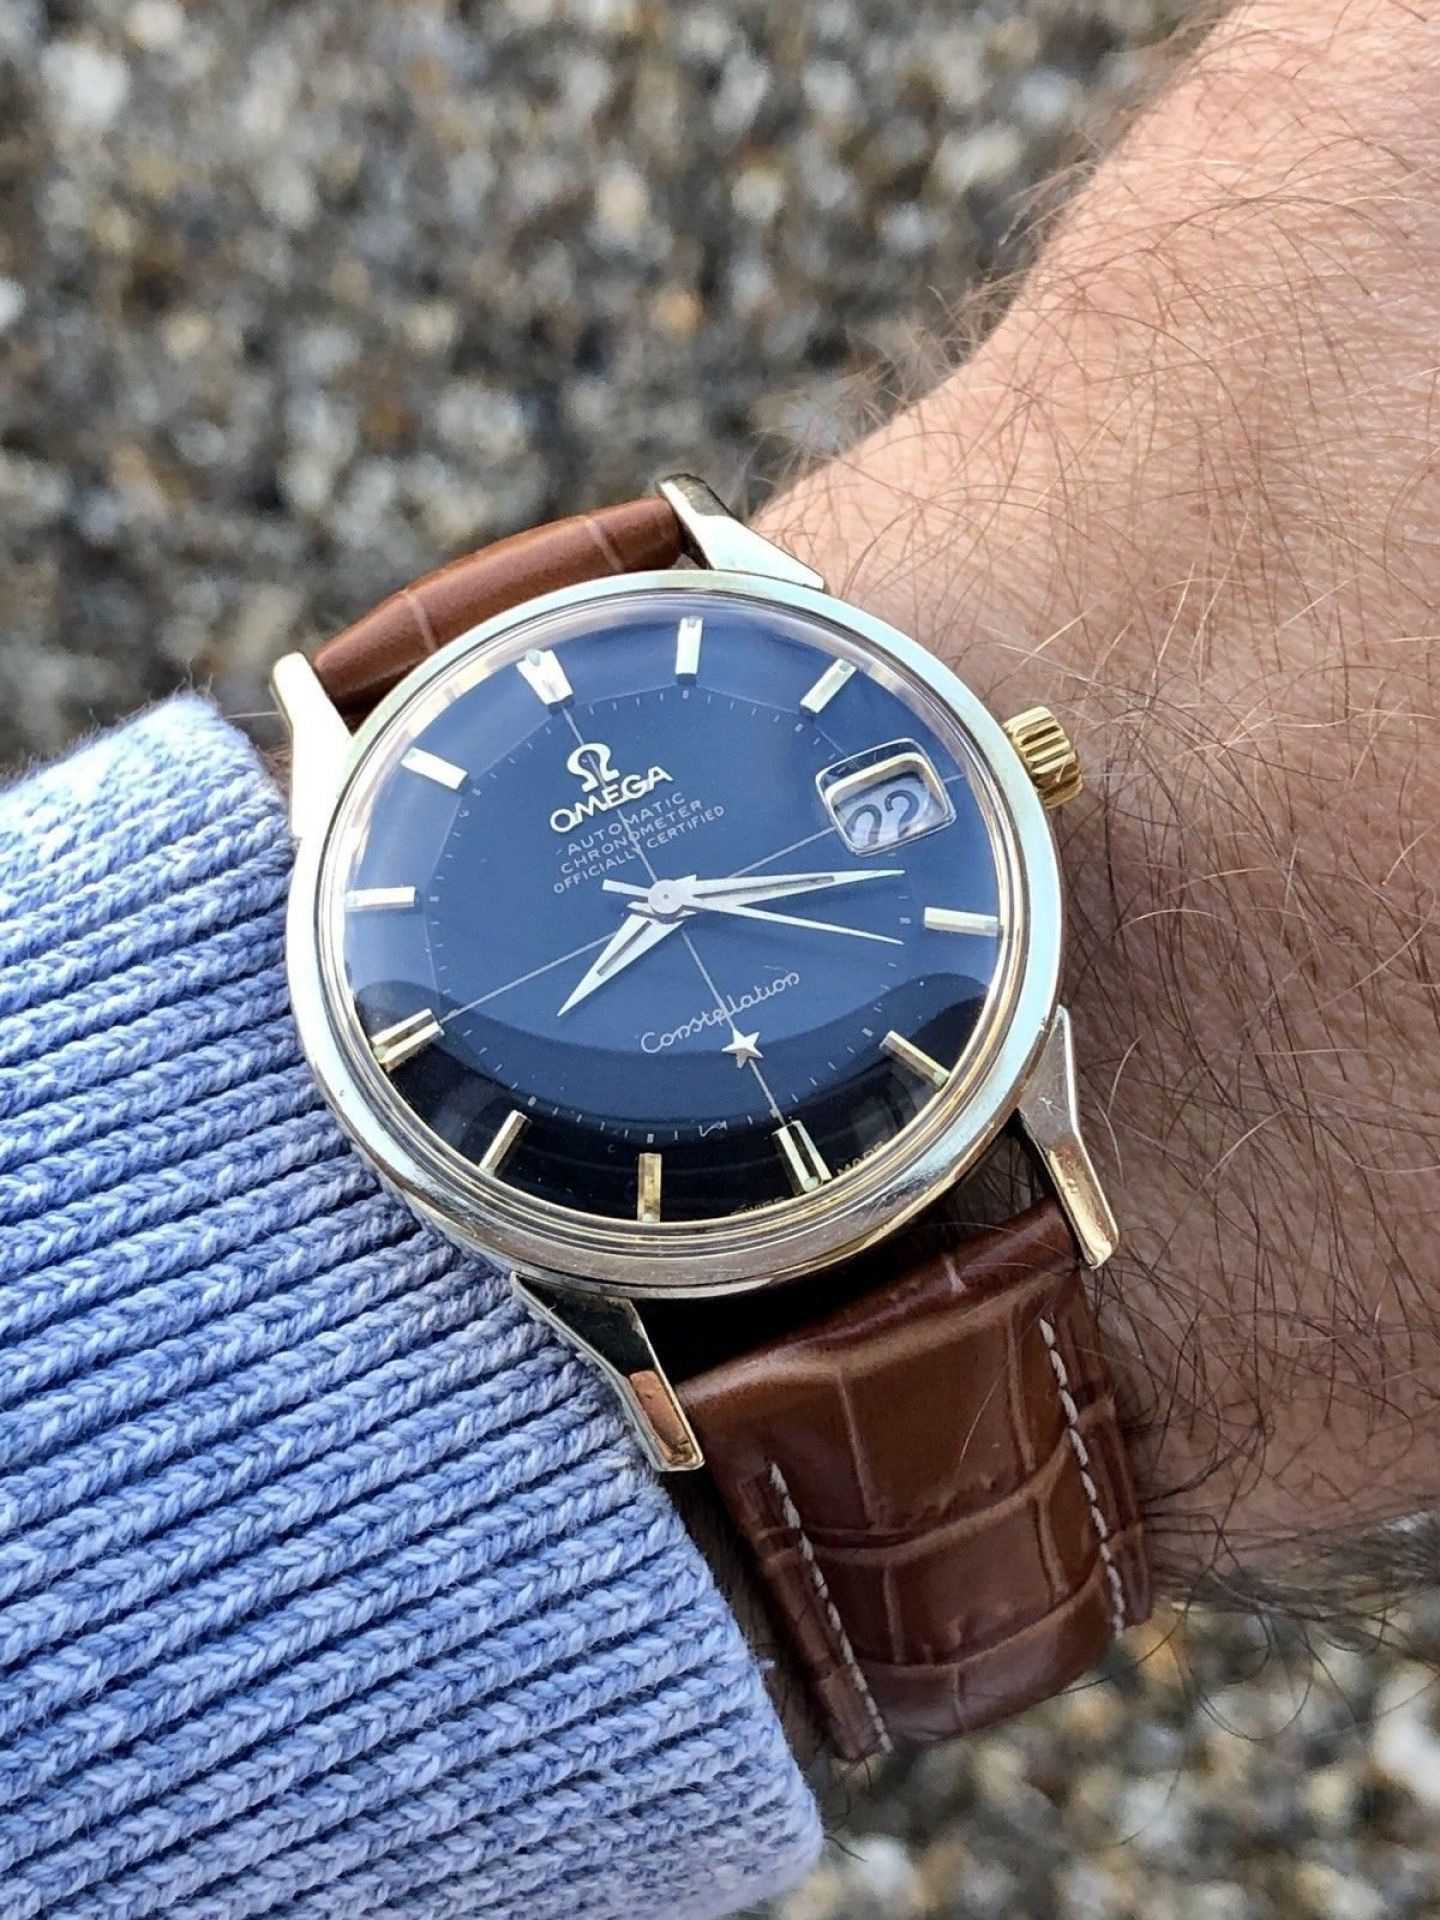 OMEGA CONSTELLATION 1960S VINTAGE 14K GOLD CAPPED AUTOMATIC